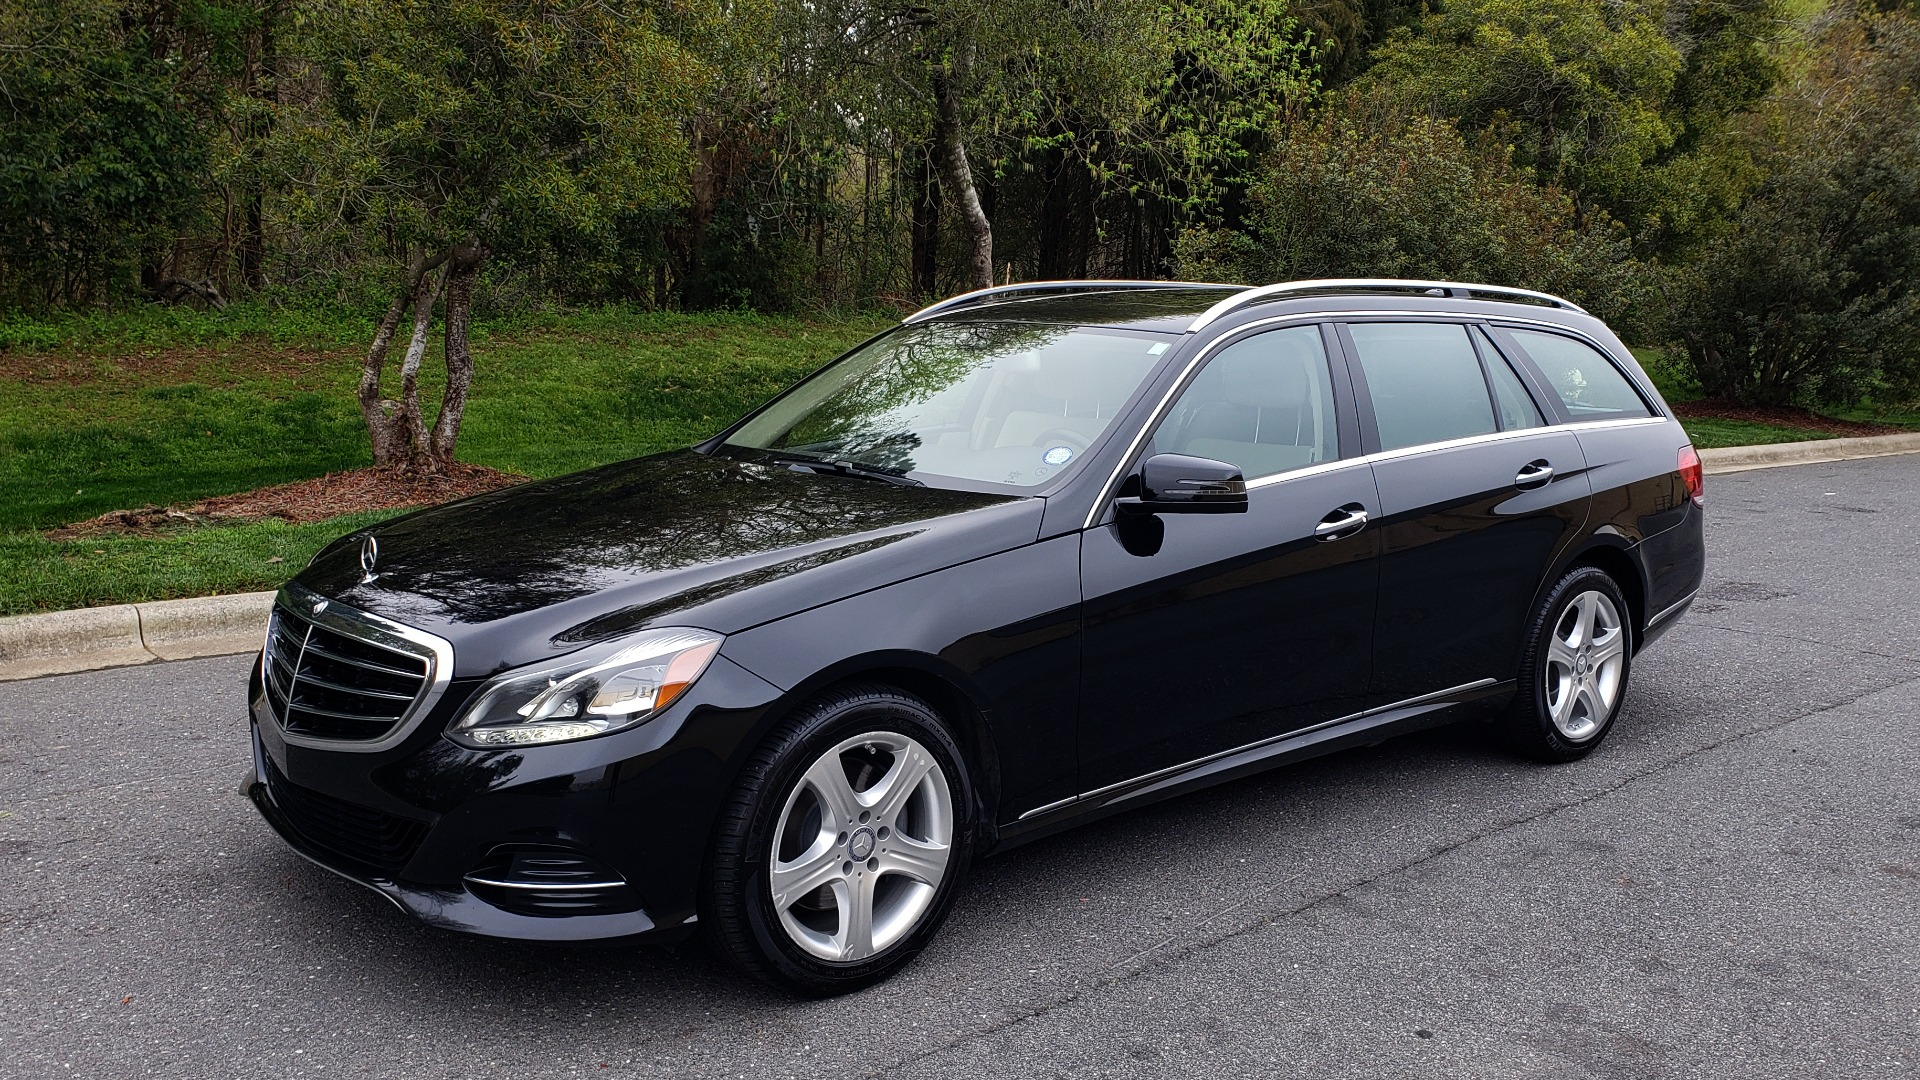 Used 2014 Mercedes-Benz E-Class E 350 4MATIC PREMIUM / NAV / SUNROOF / REARVIEW / 3-ROW for sale Sold at Formula Imports in Charlotte NC 28227 1